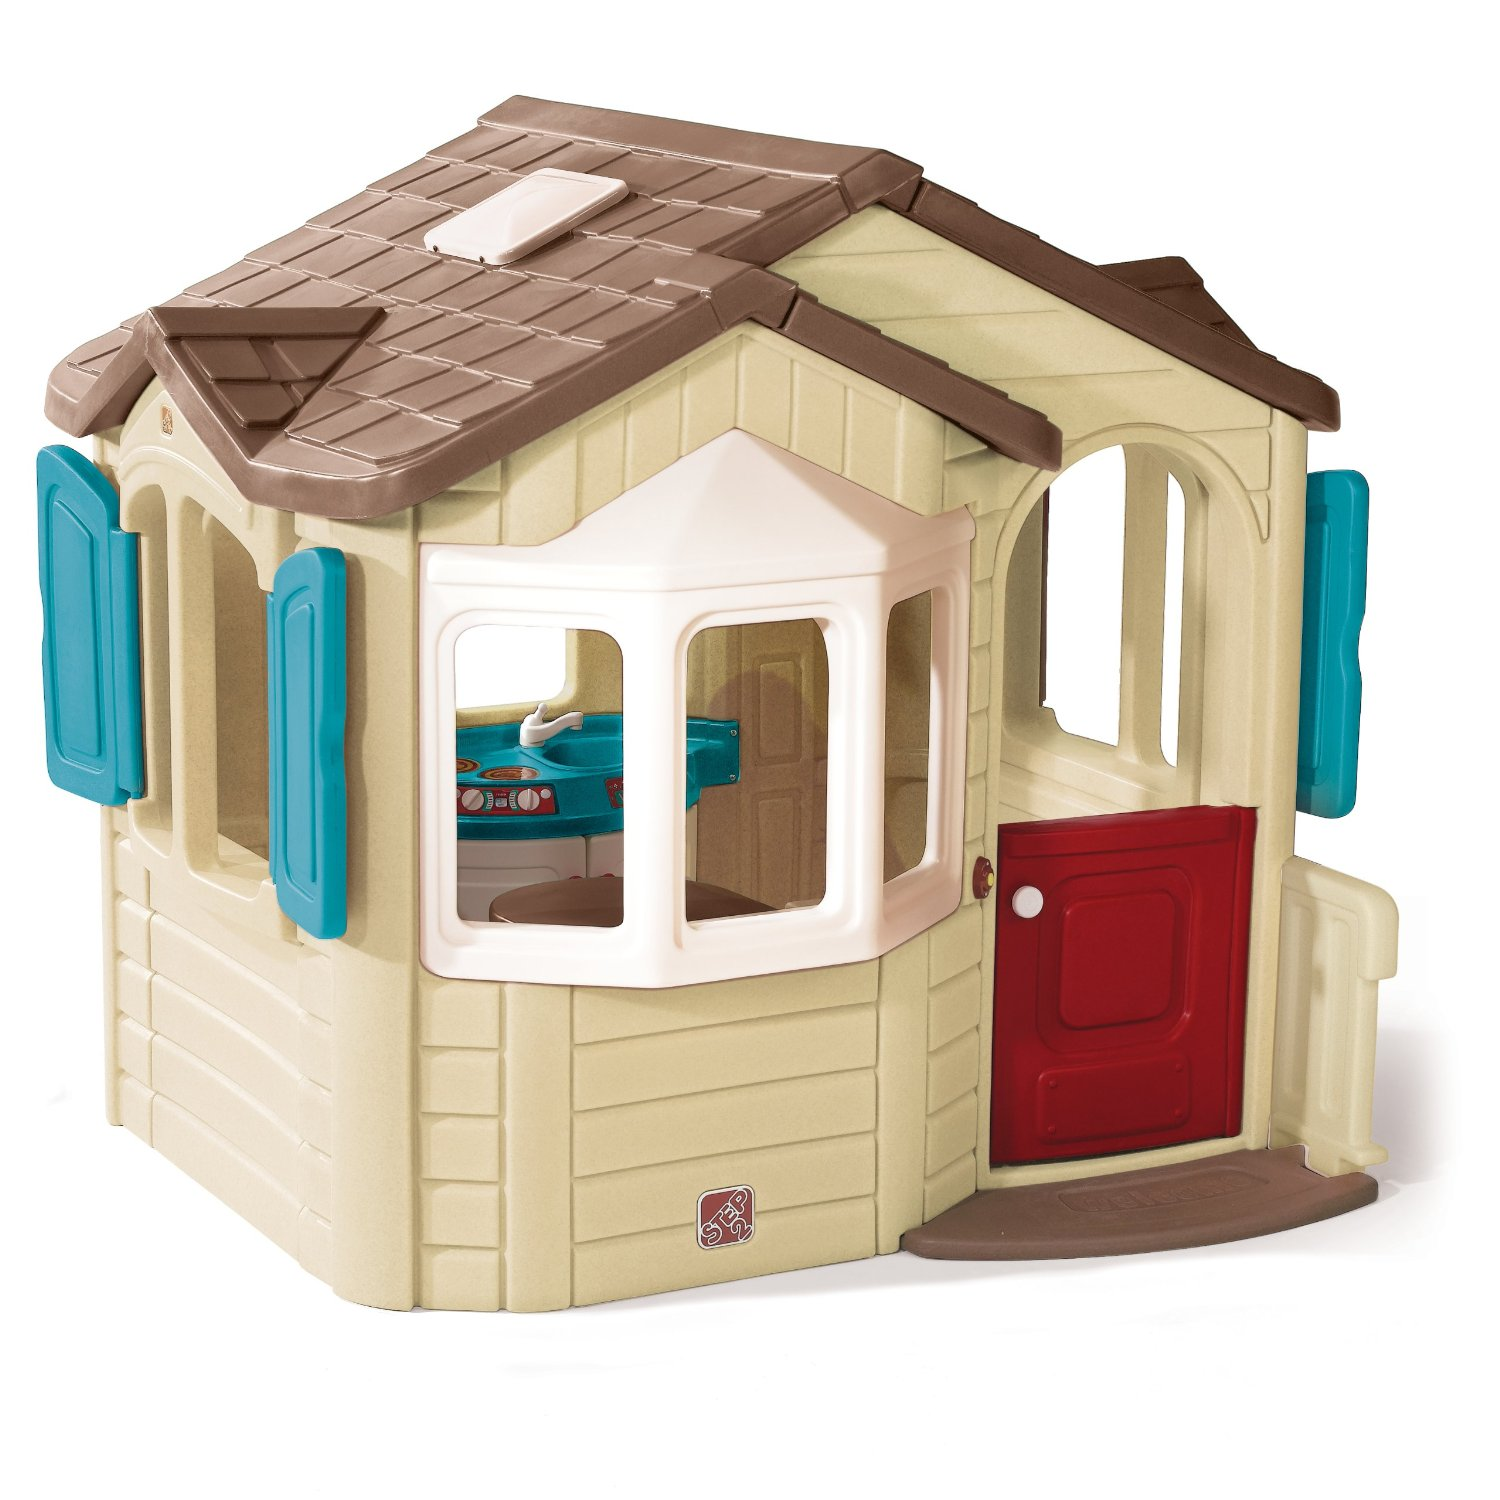 Total fab outdoor playhouse with kitchen inside for Casita infantil jardin